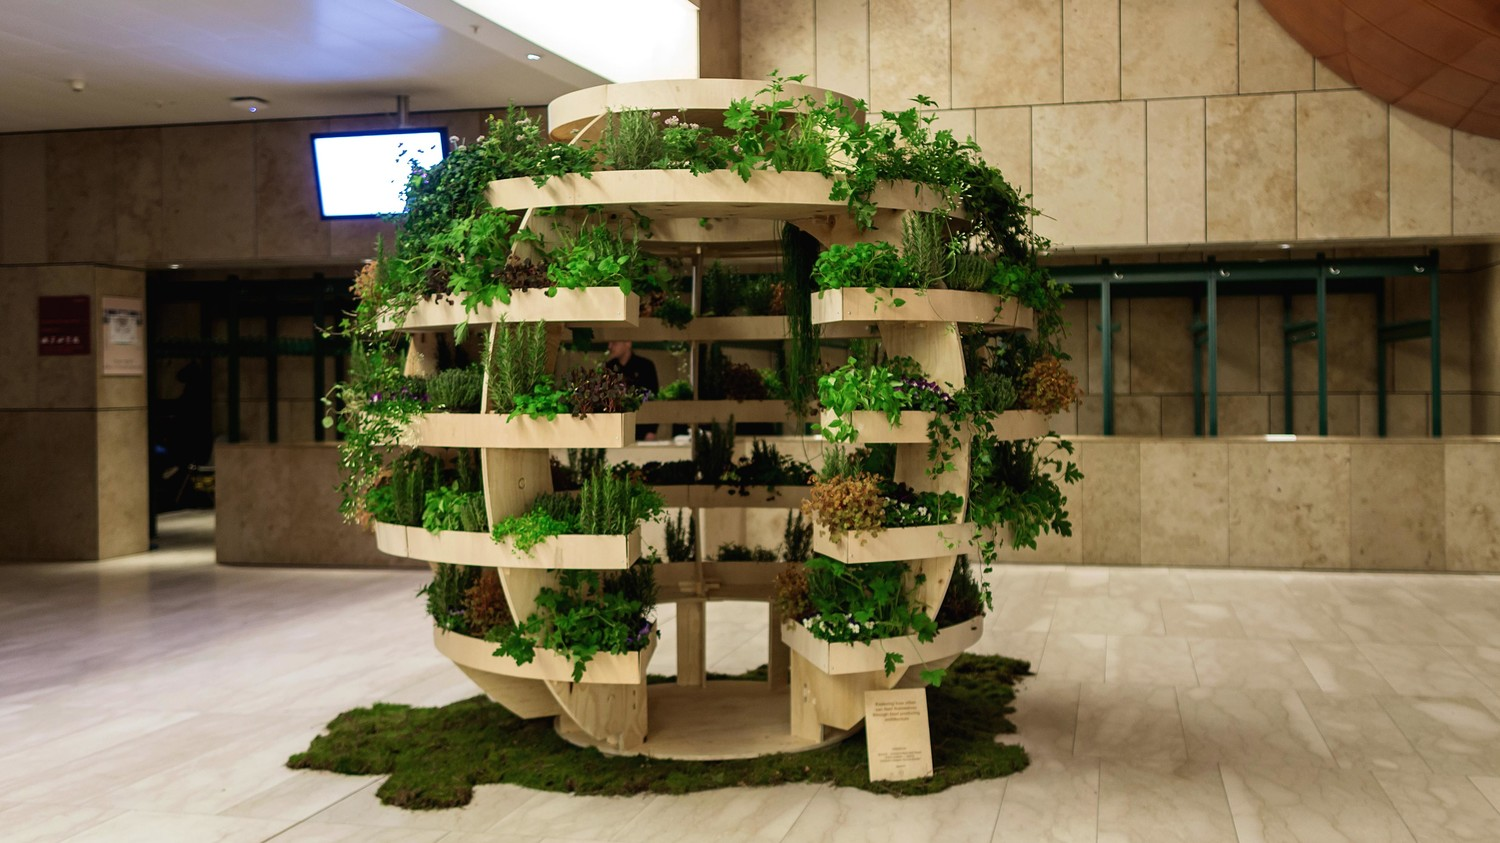 Cool Plants For Your Room Build Your Own Spherical Plant Room With Free Blueprints